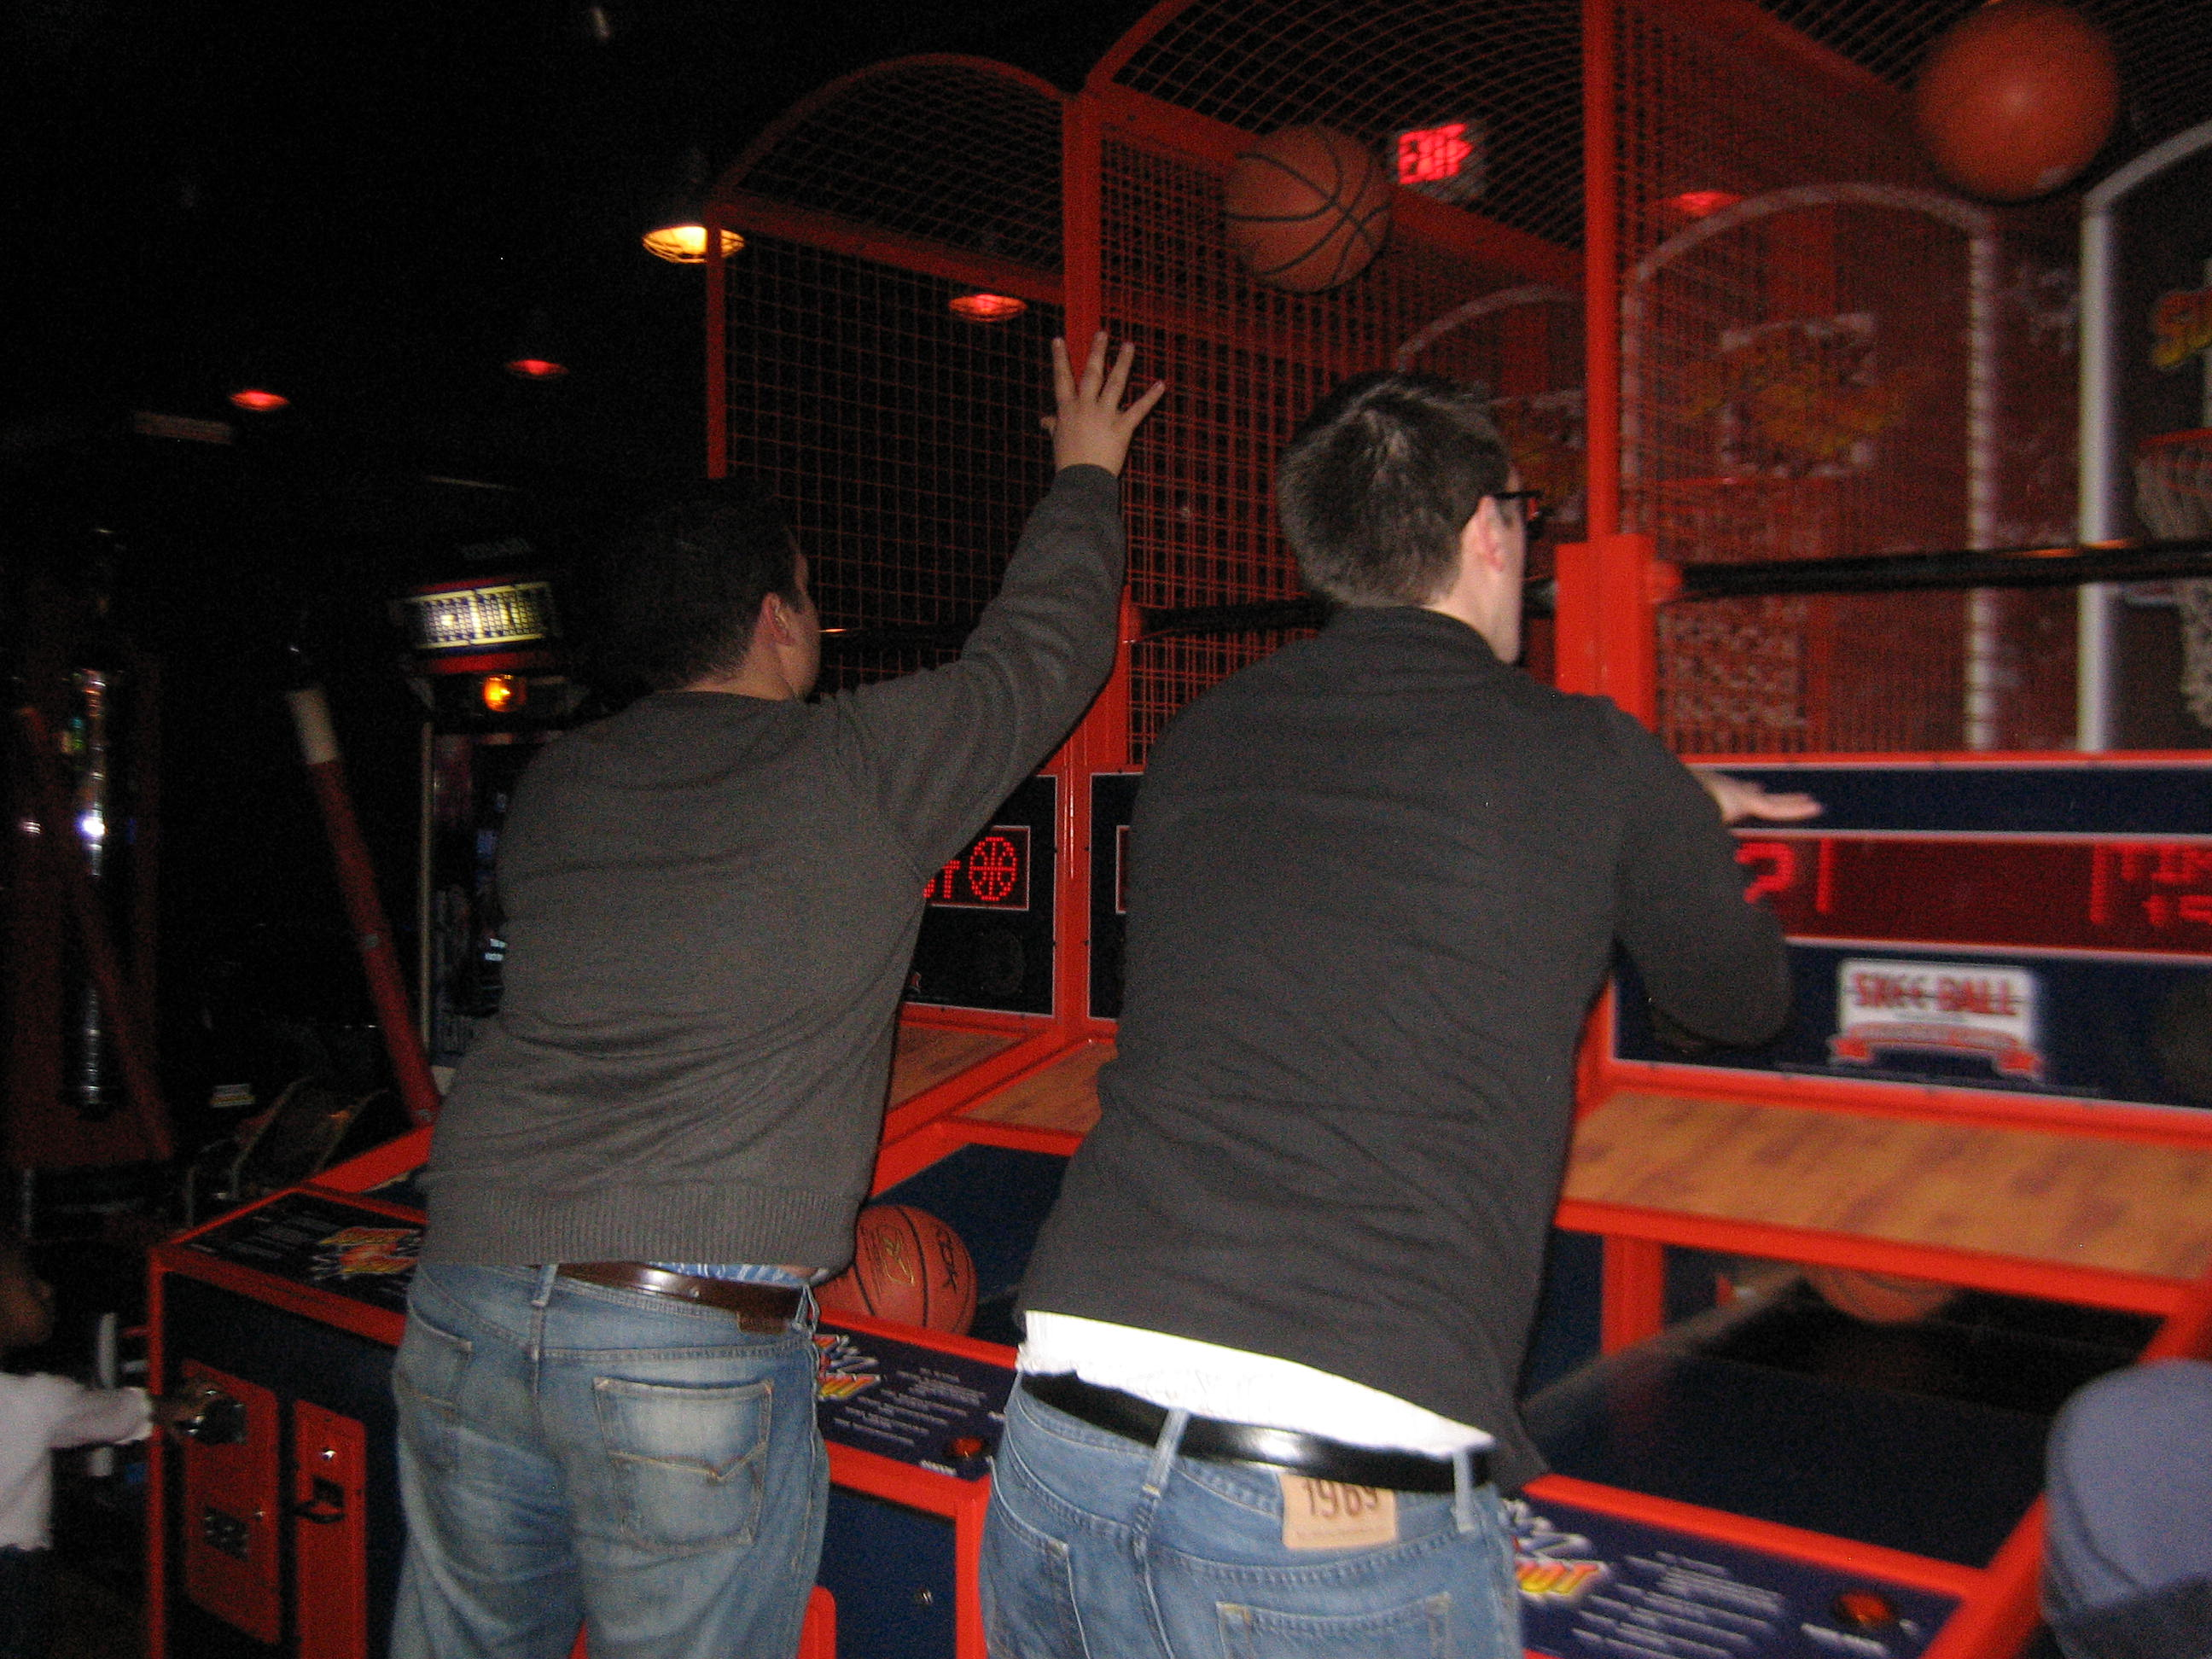 How many points did Brian & Dave earn by playing this basketball game?